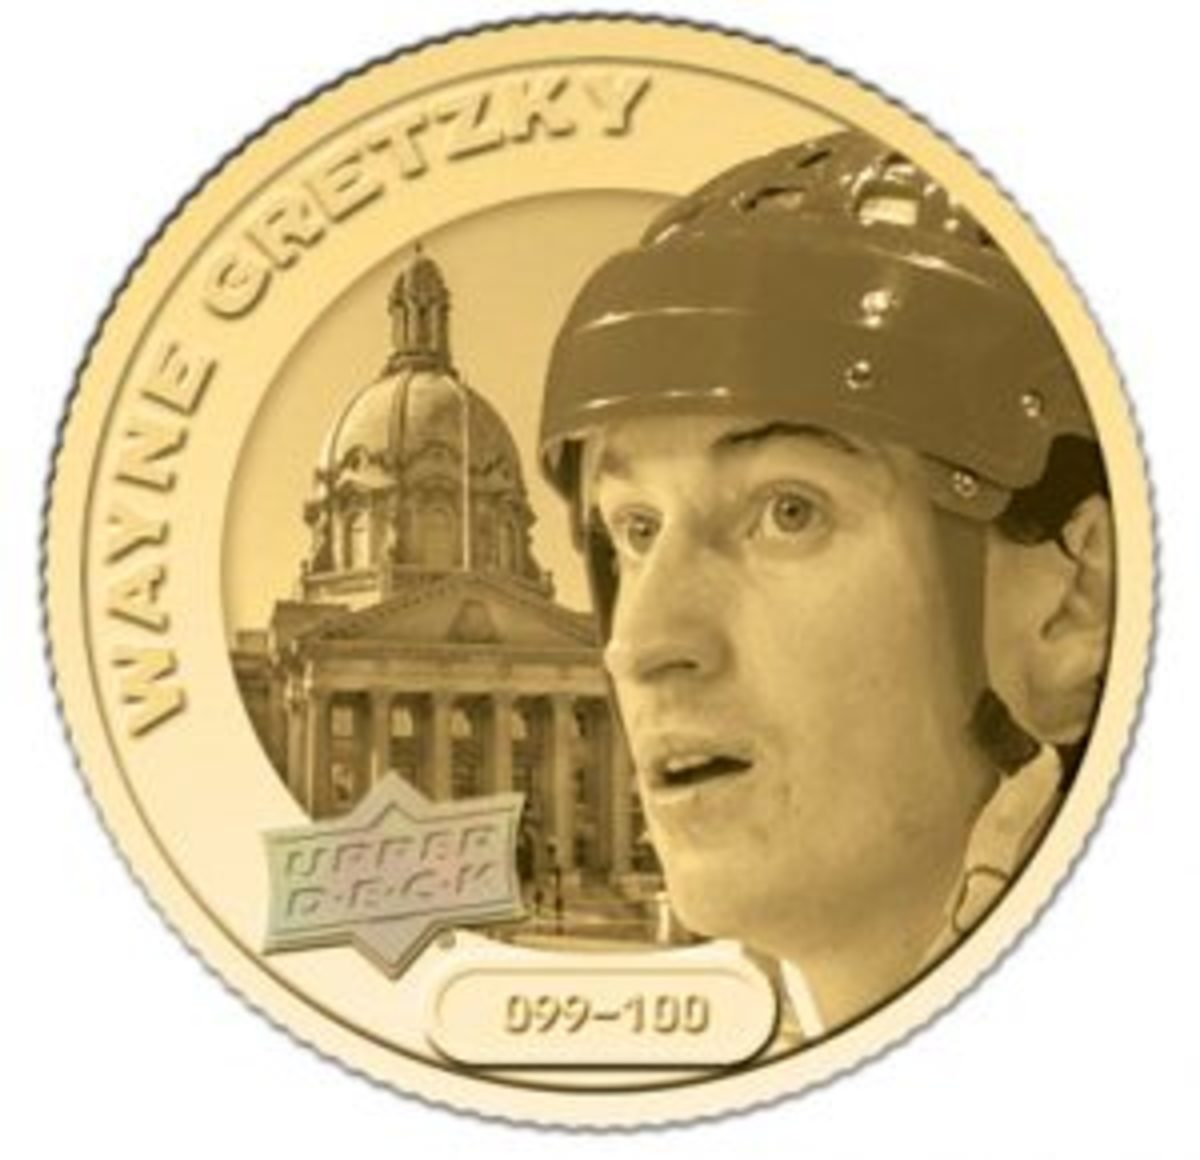 The Grandeur Hockey Coin Collection includes a gold coin variation that is numbered to 100 for each player. These are the rarest coins in the collection.